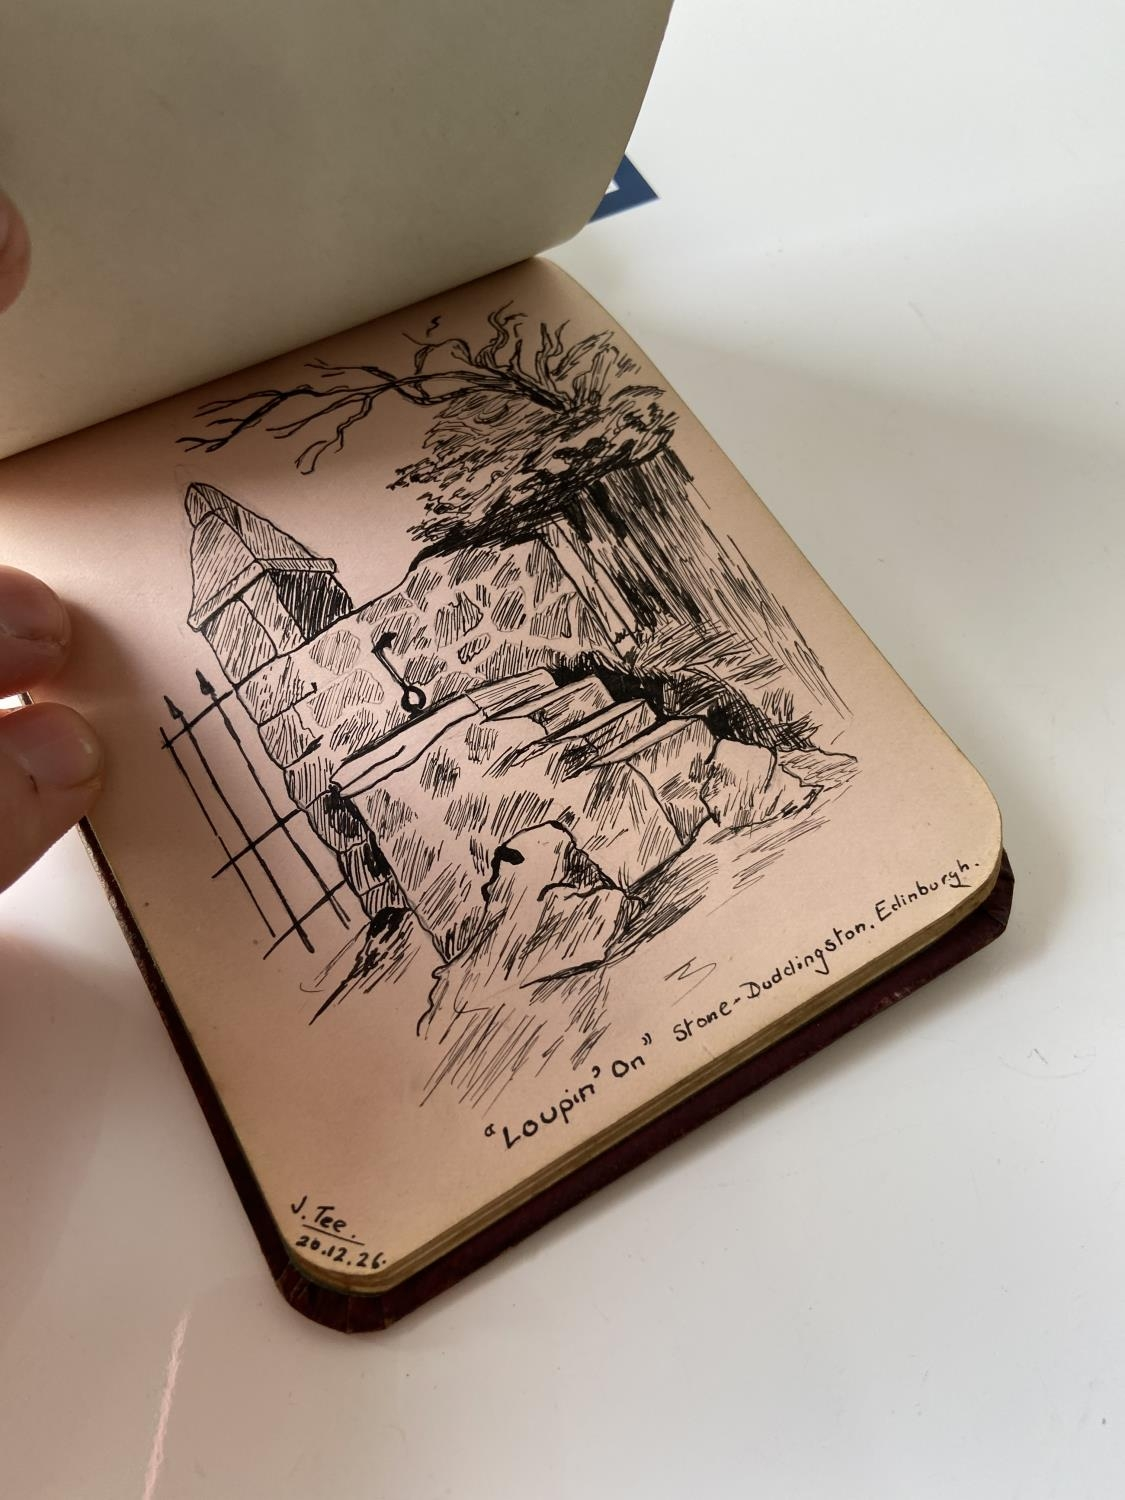 An old autograph album containing various poems, sayings & doodles - Image 18 of 18